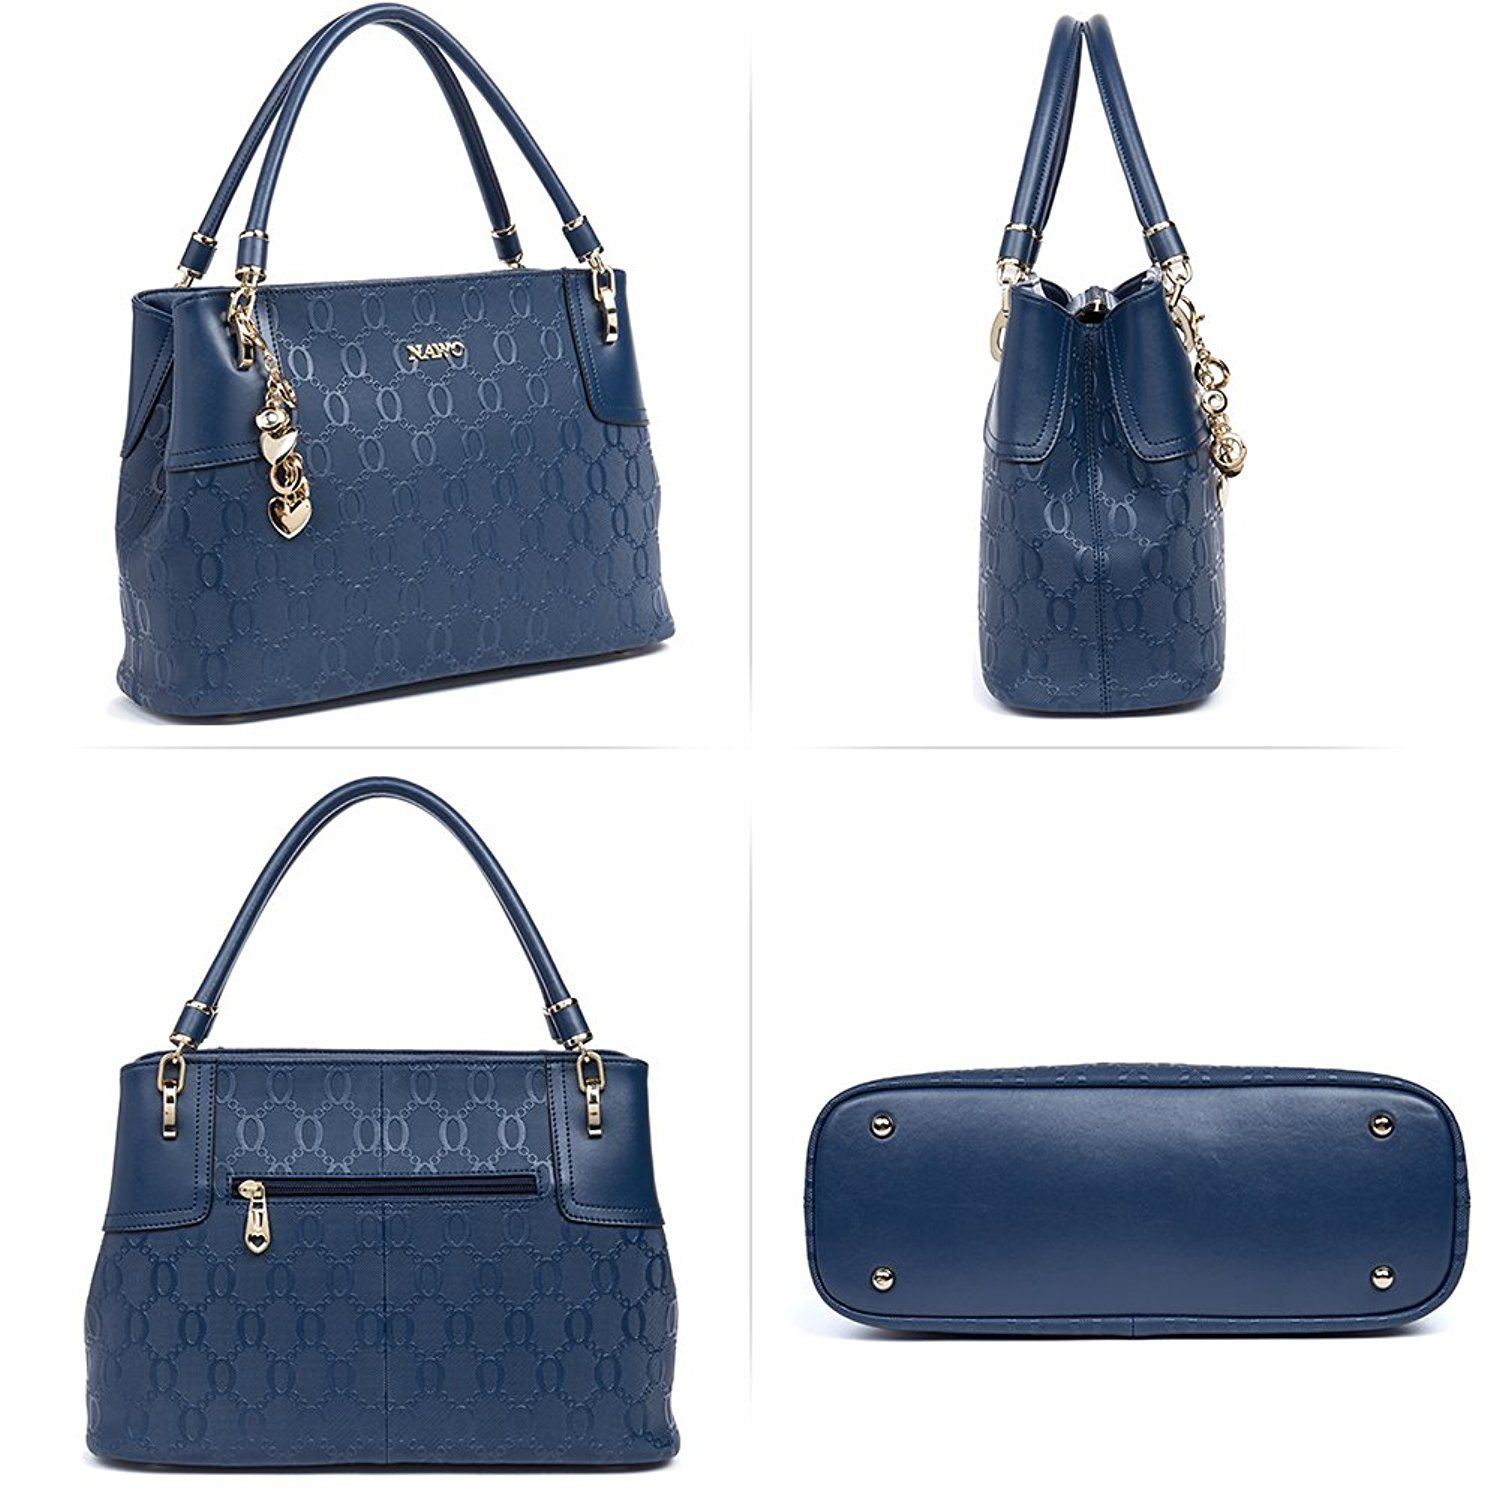 NAWO Leather Designer Handbags Shoulder Tote Top-handle Bag Clutch Purse  for Women Blue d2ae3eb789fbe